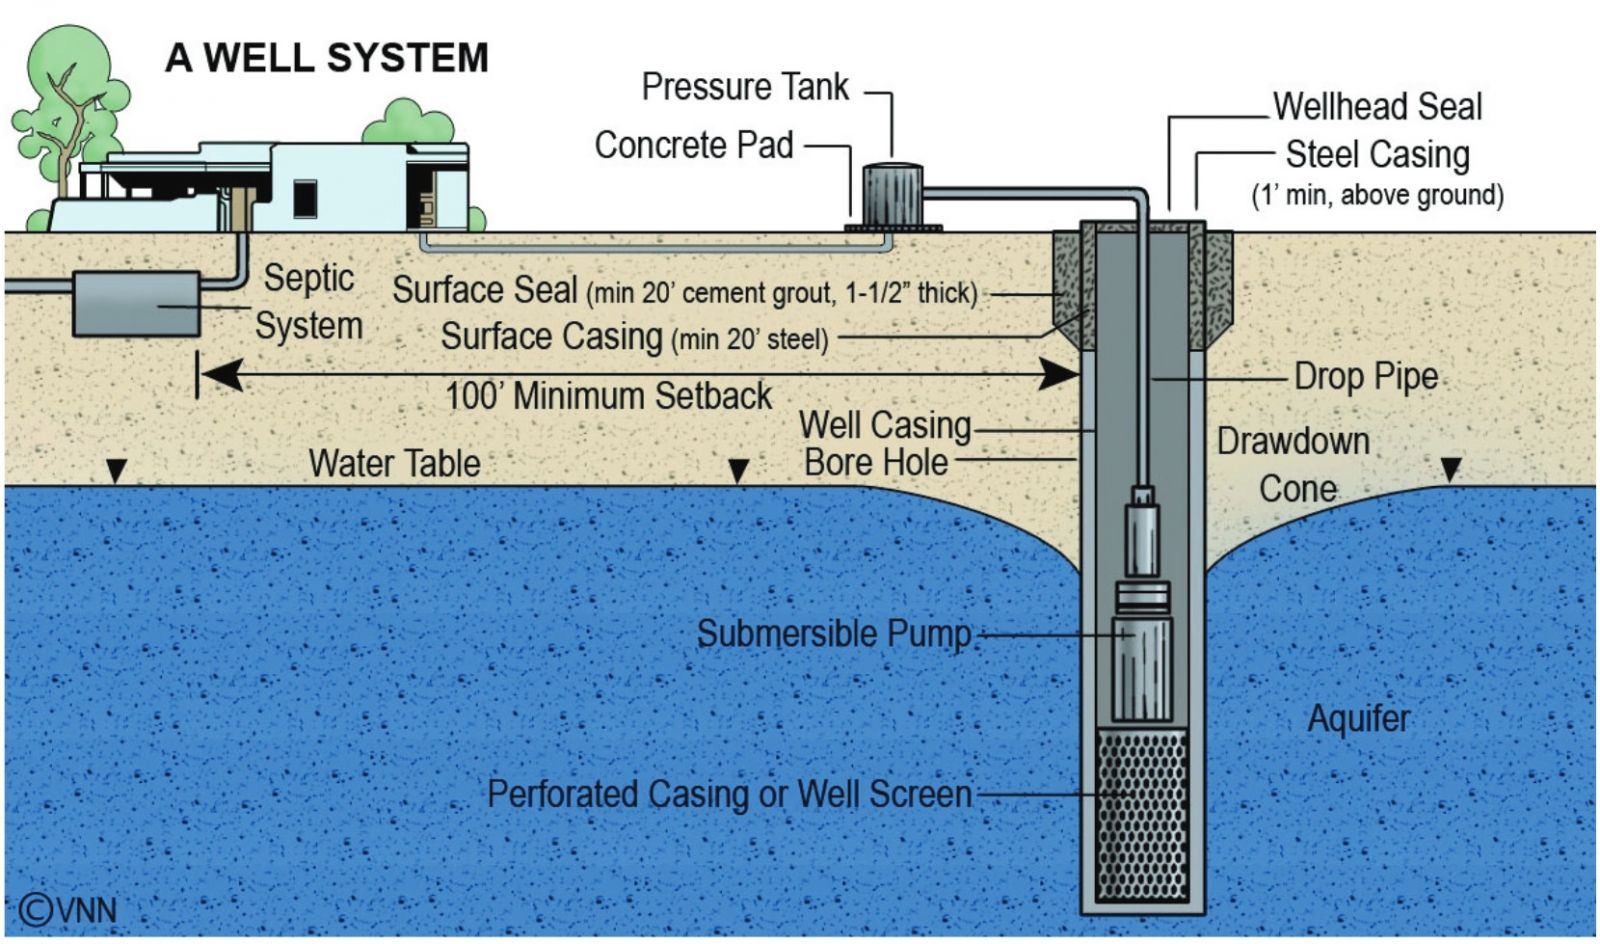 A Well system